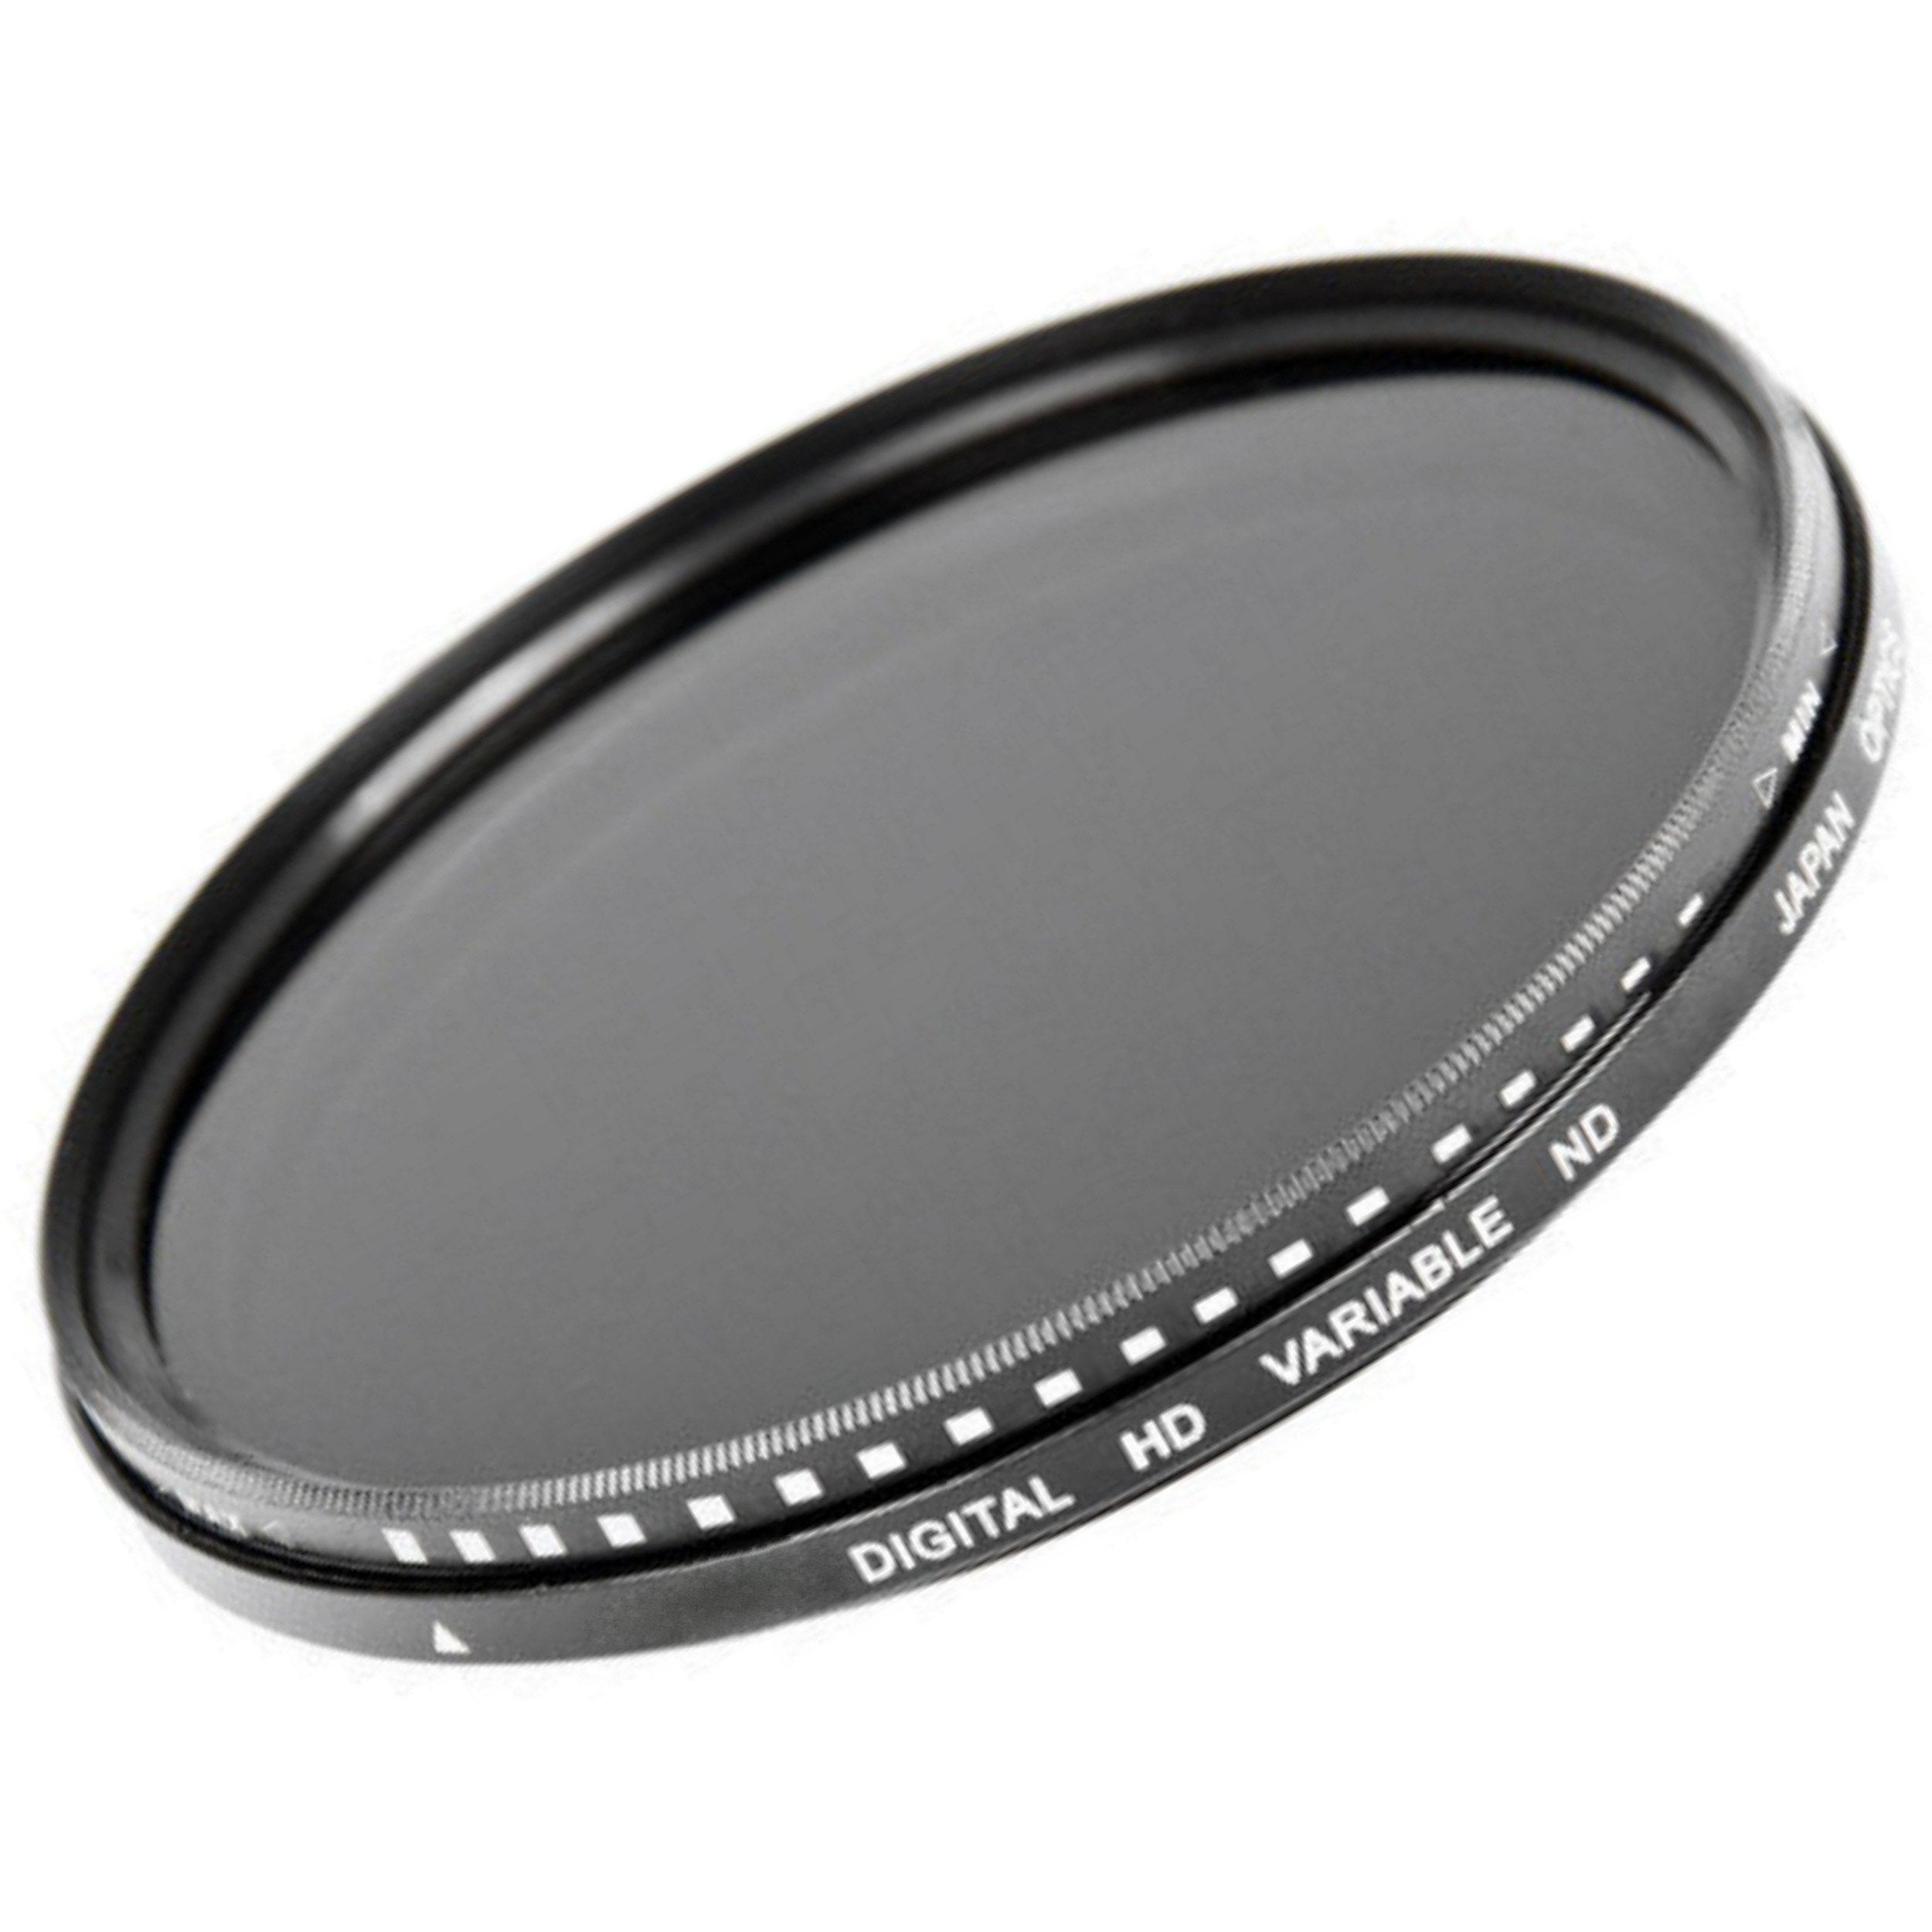 PRO - 95mm ND Filter - 8 Stops of Light ND Adjustable Neutral Density Variable Fader Filter Lens 95mm Fits Schneider PC-TS Macro-Symmar 4.5/90 HM 95mm Neutral Density Filter, 95 mm ND Filter Japan by Shop Smart Deals